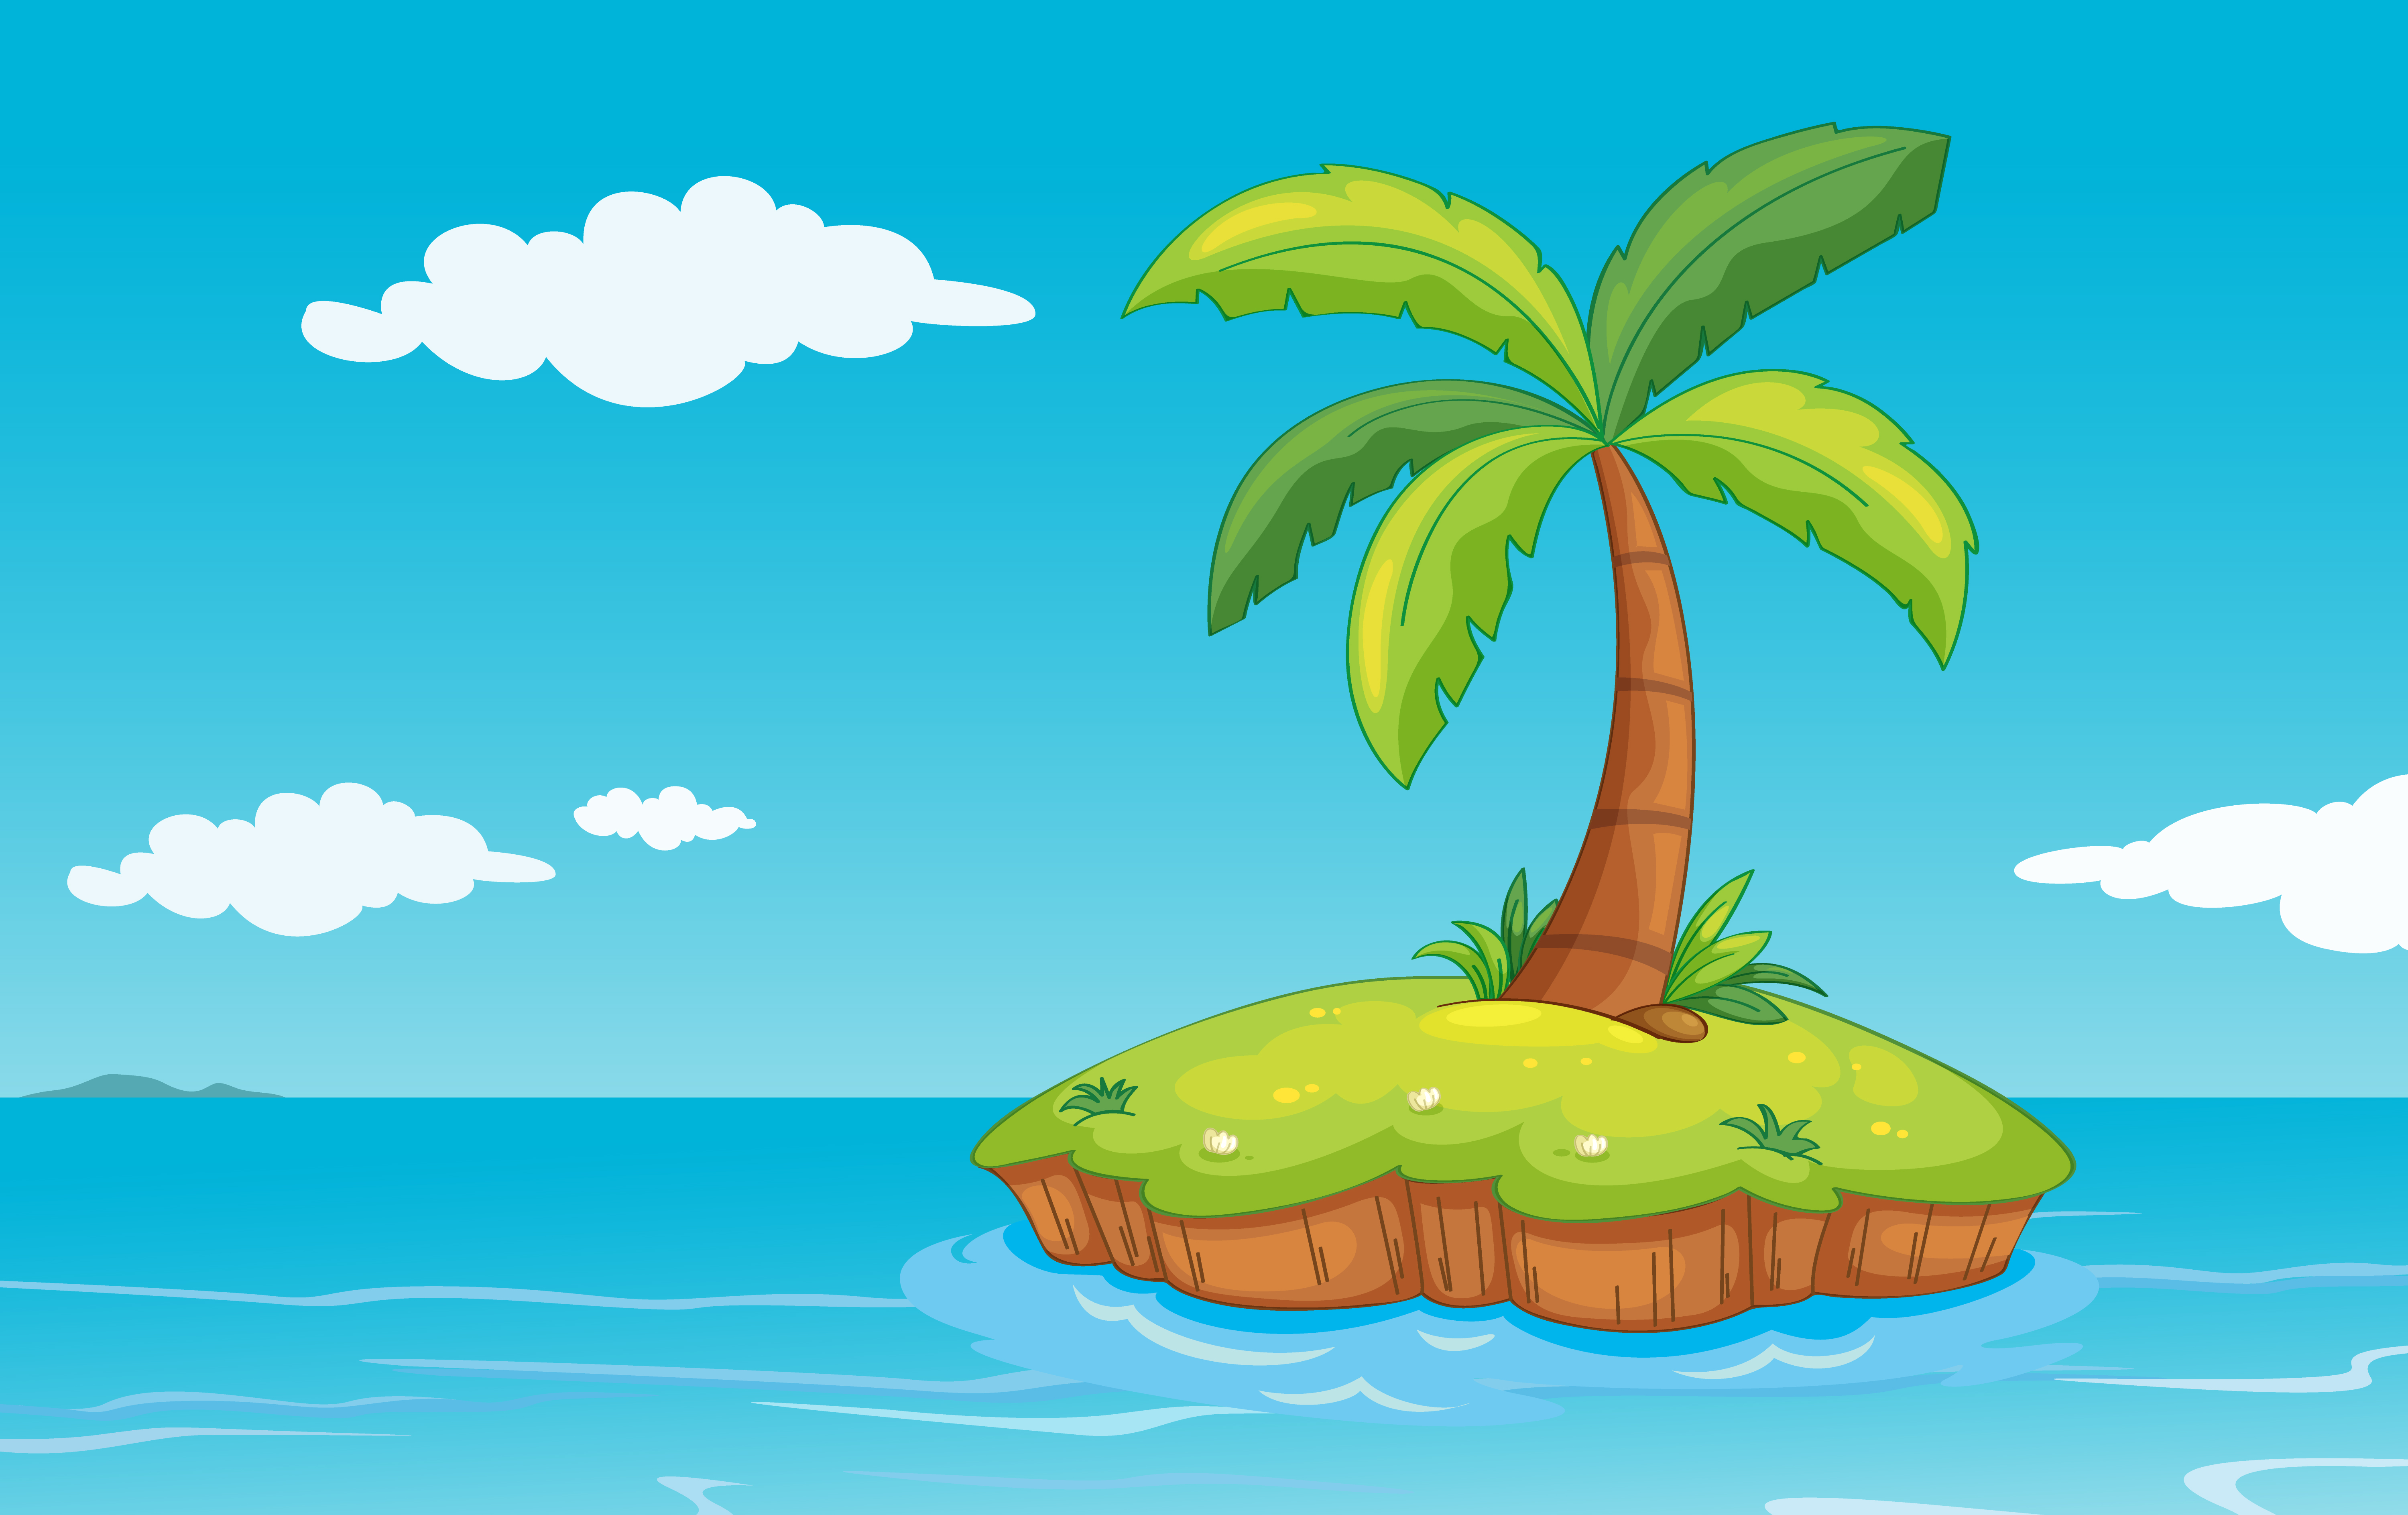 Palm Tree On Island Download Free Vectors Clipart